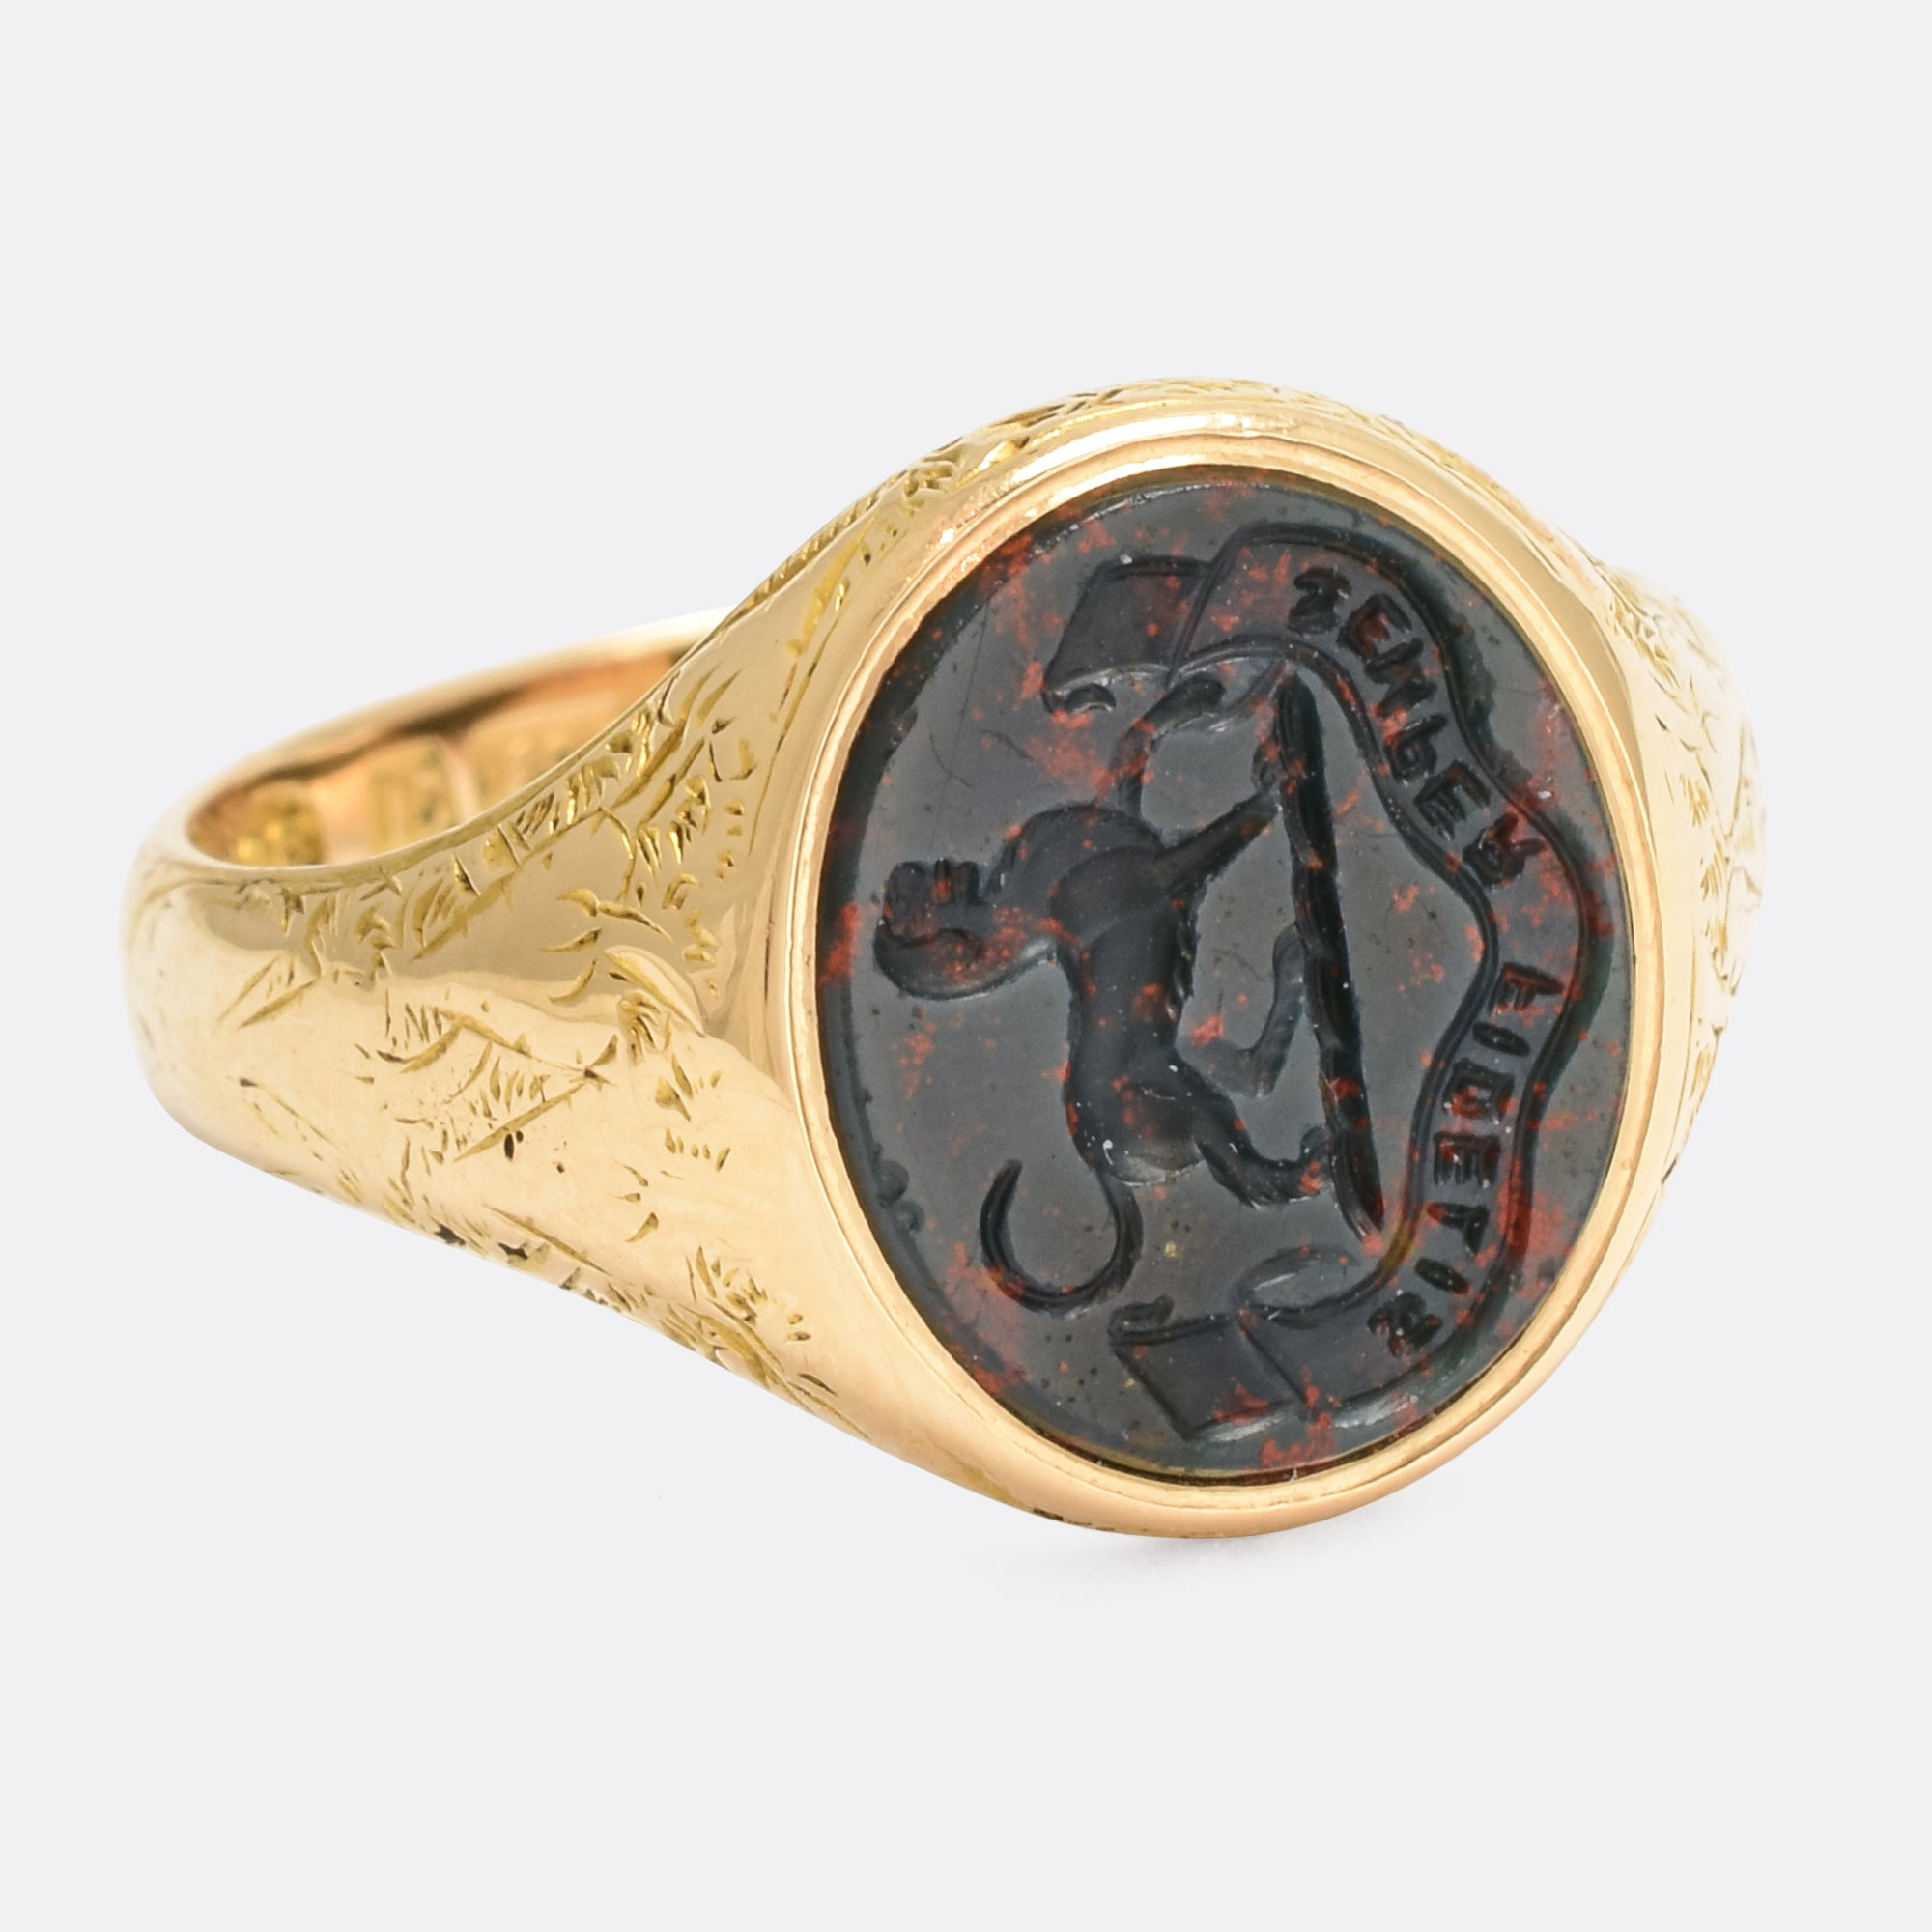 rebus crest engraving gallery a lion rings signet ring of deep us seal